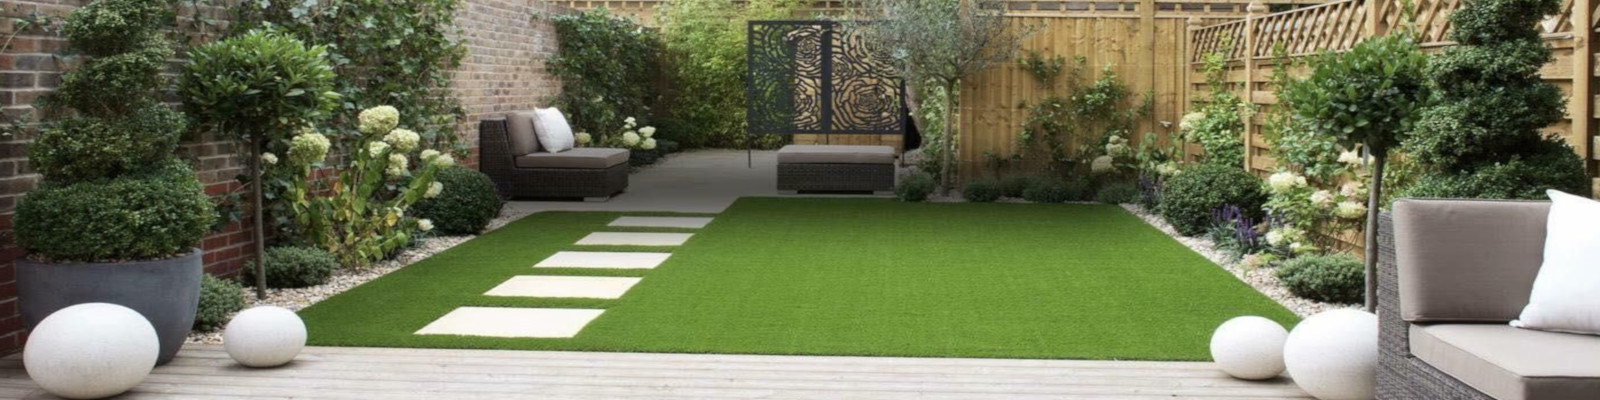 Carpetways Artificial grass slider image